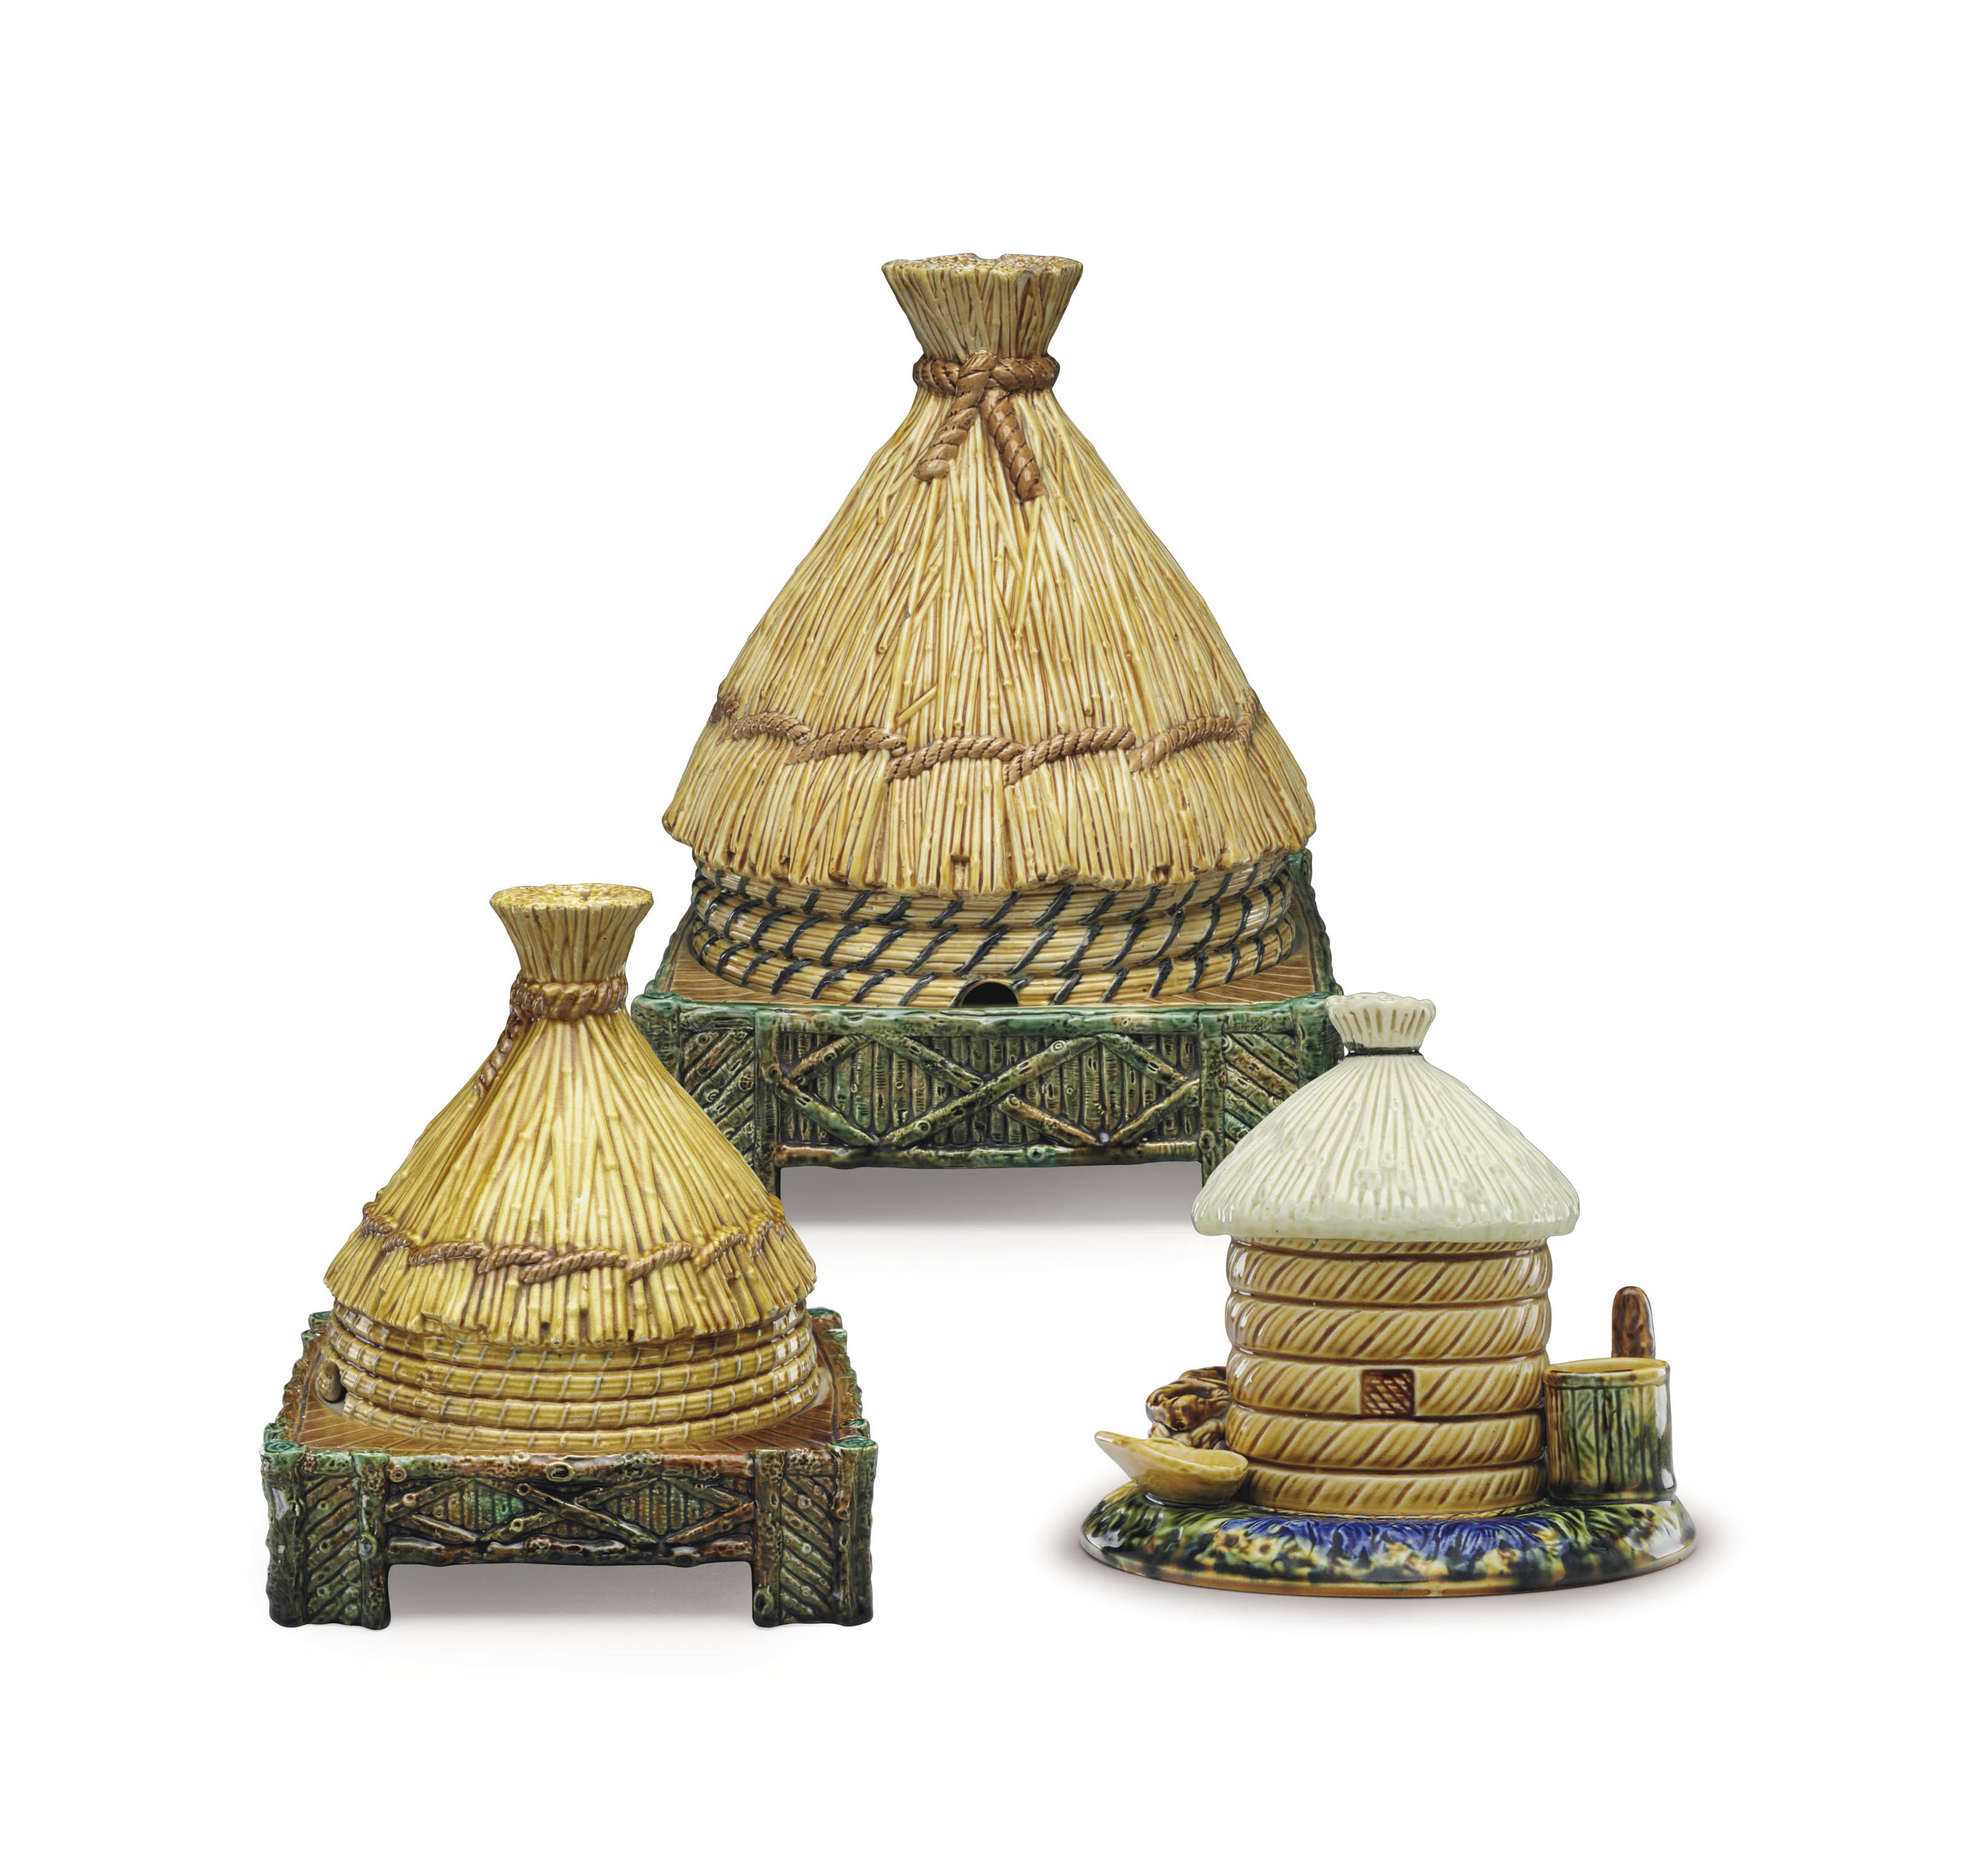 TWO GEORGE JONES MAJOLICA CHEESE BELLS AND STANDS